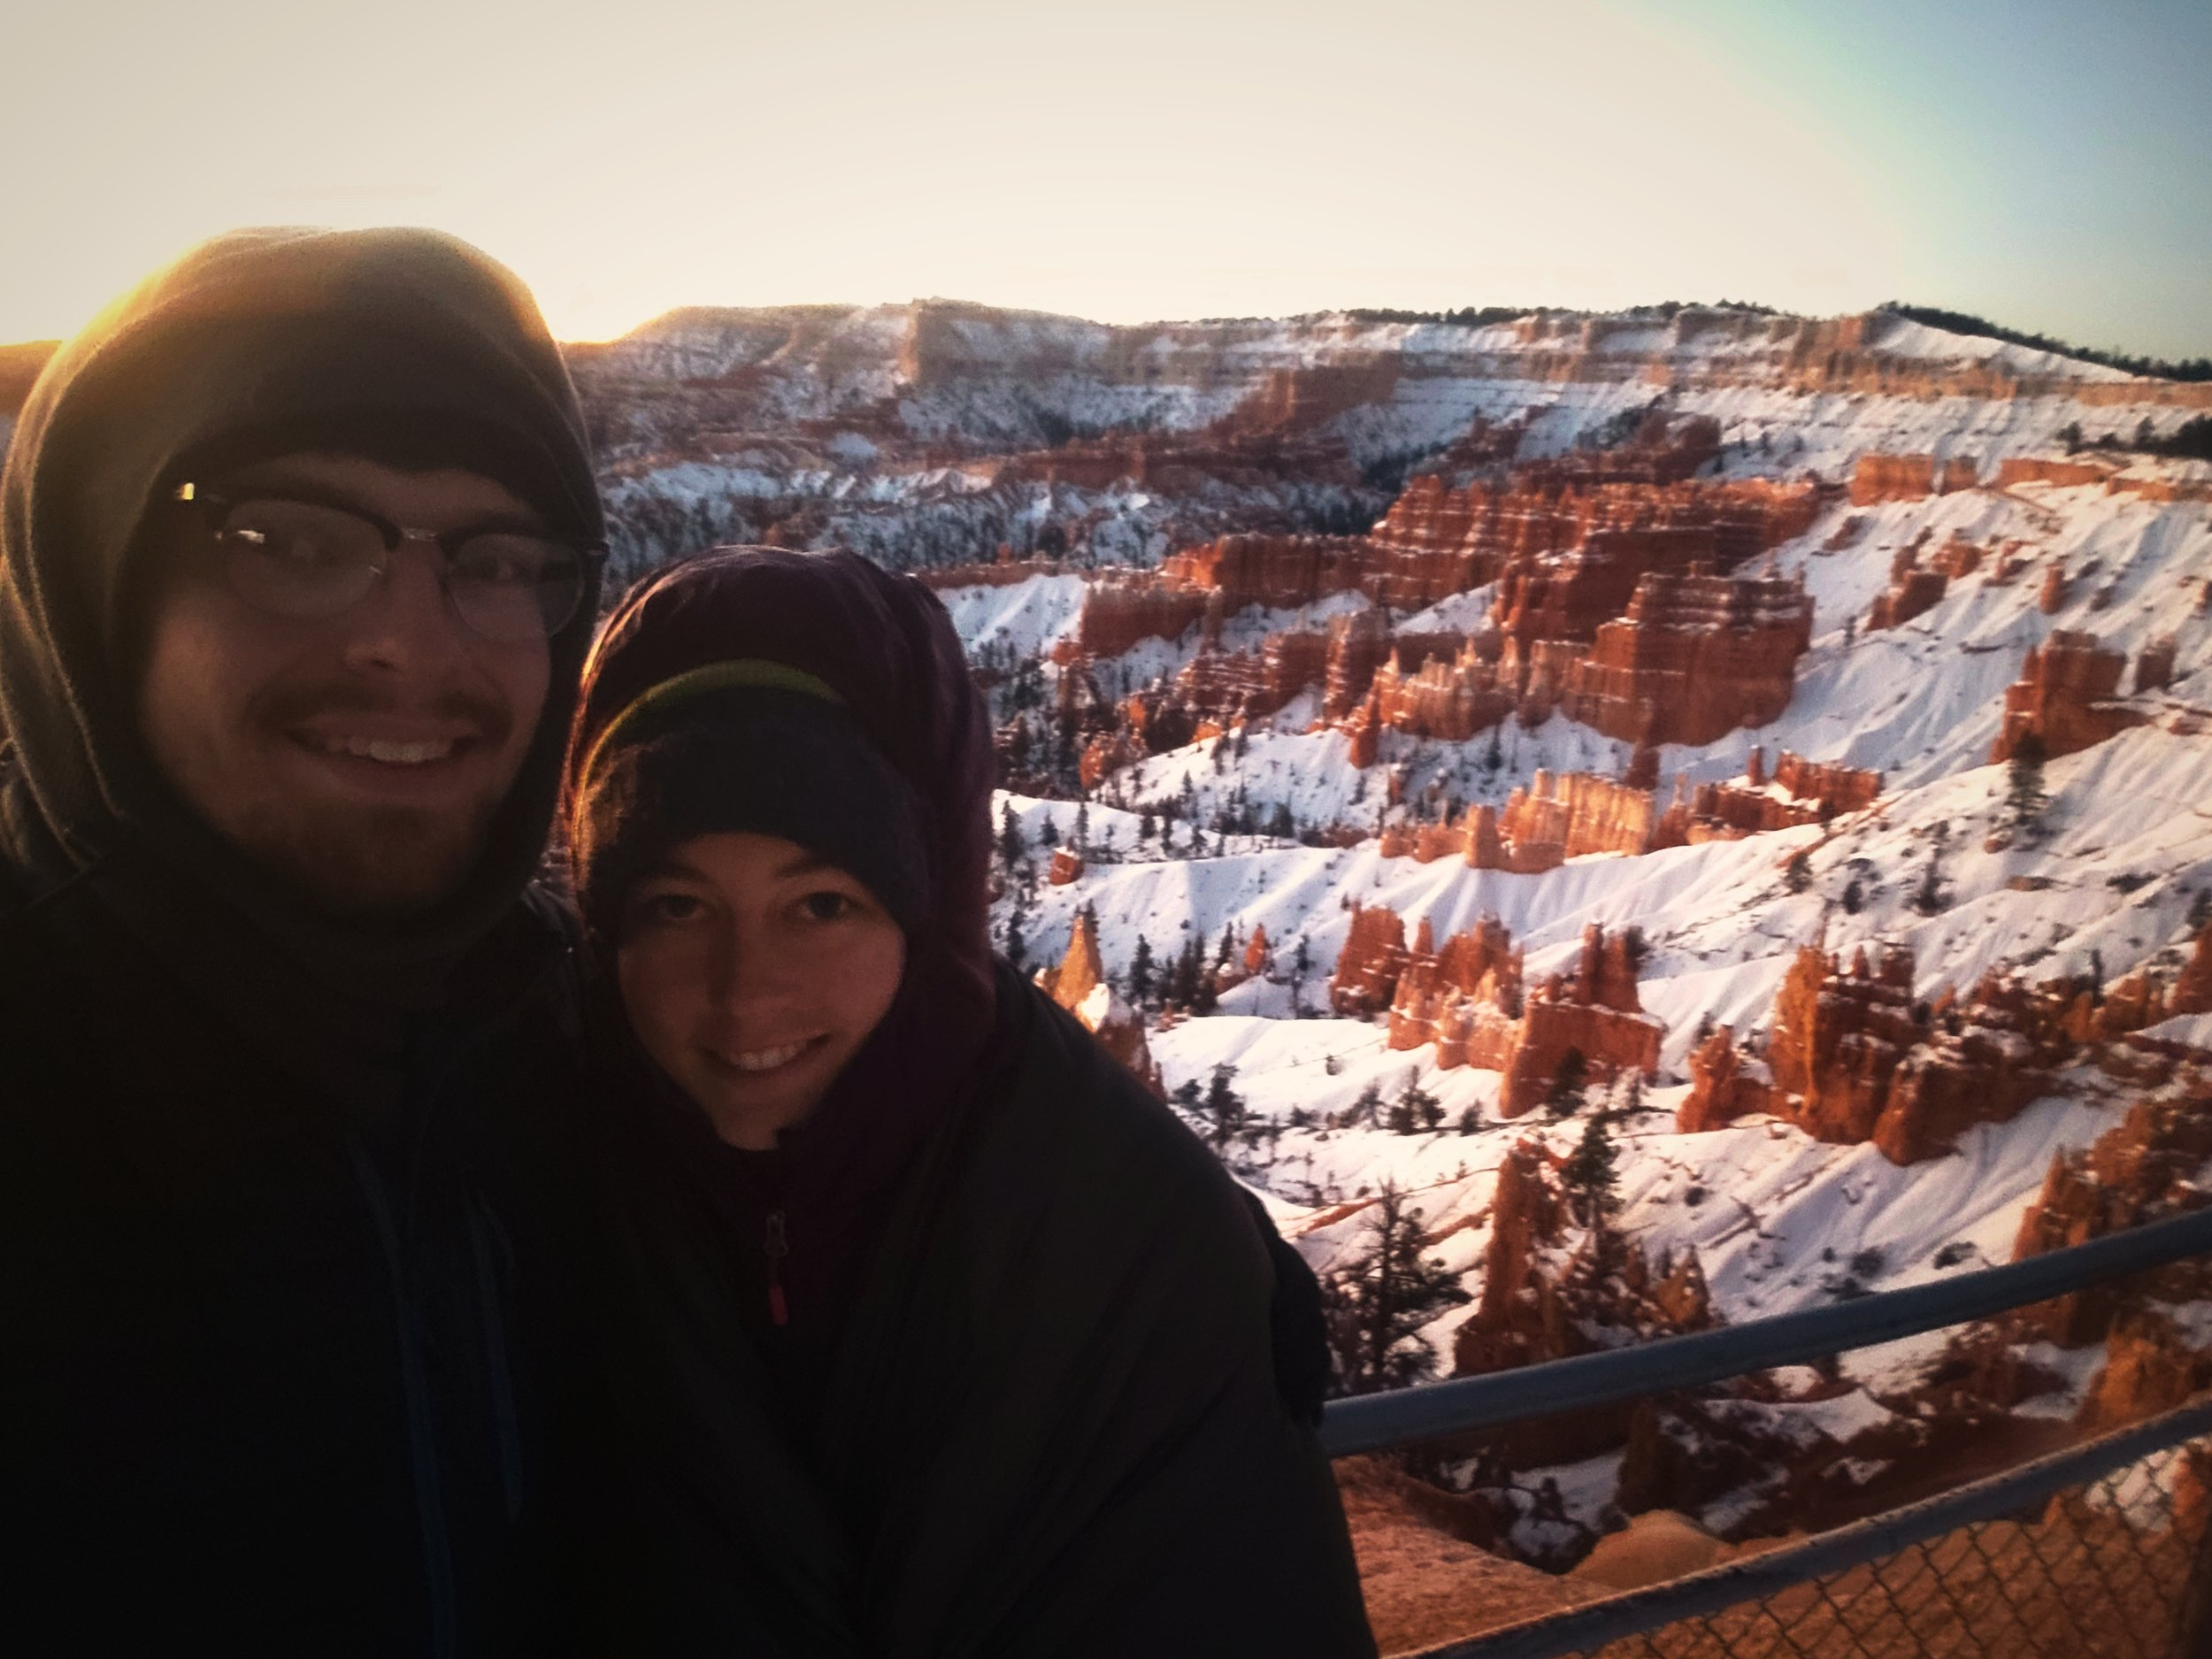 It was -3 degrees with windchill when we watched the sunrise at Sunrise Point in Bryce Canyon National Park.